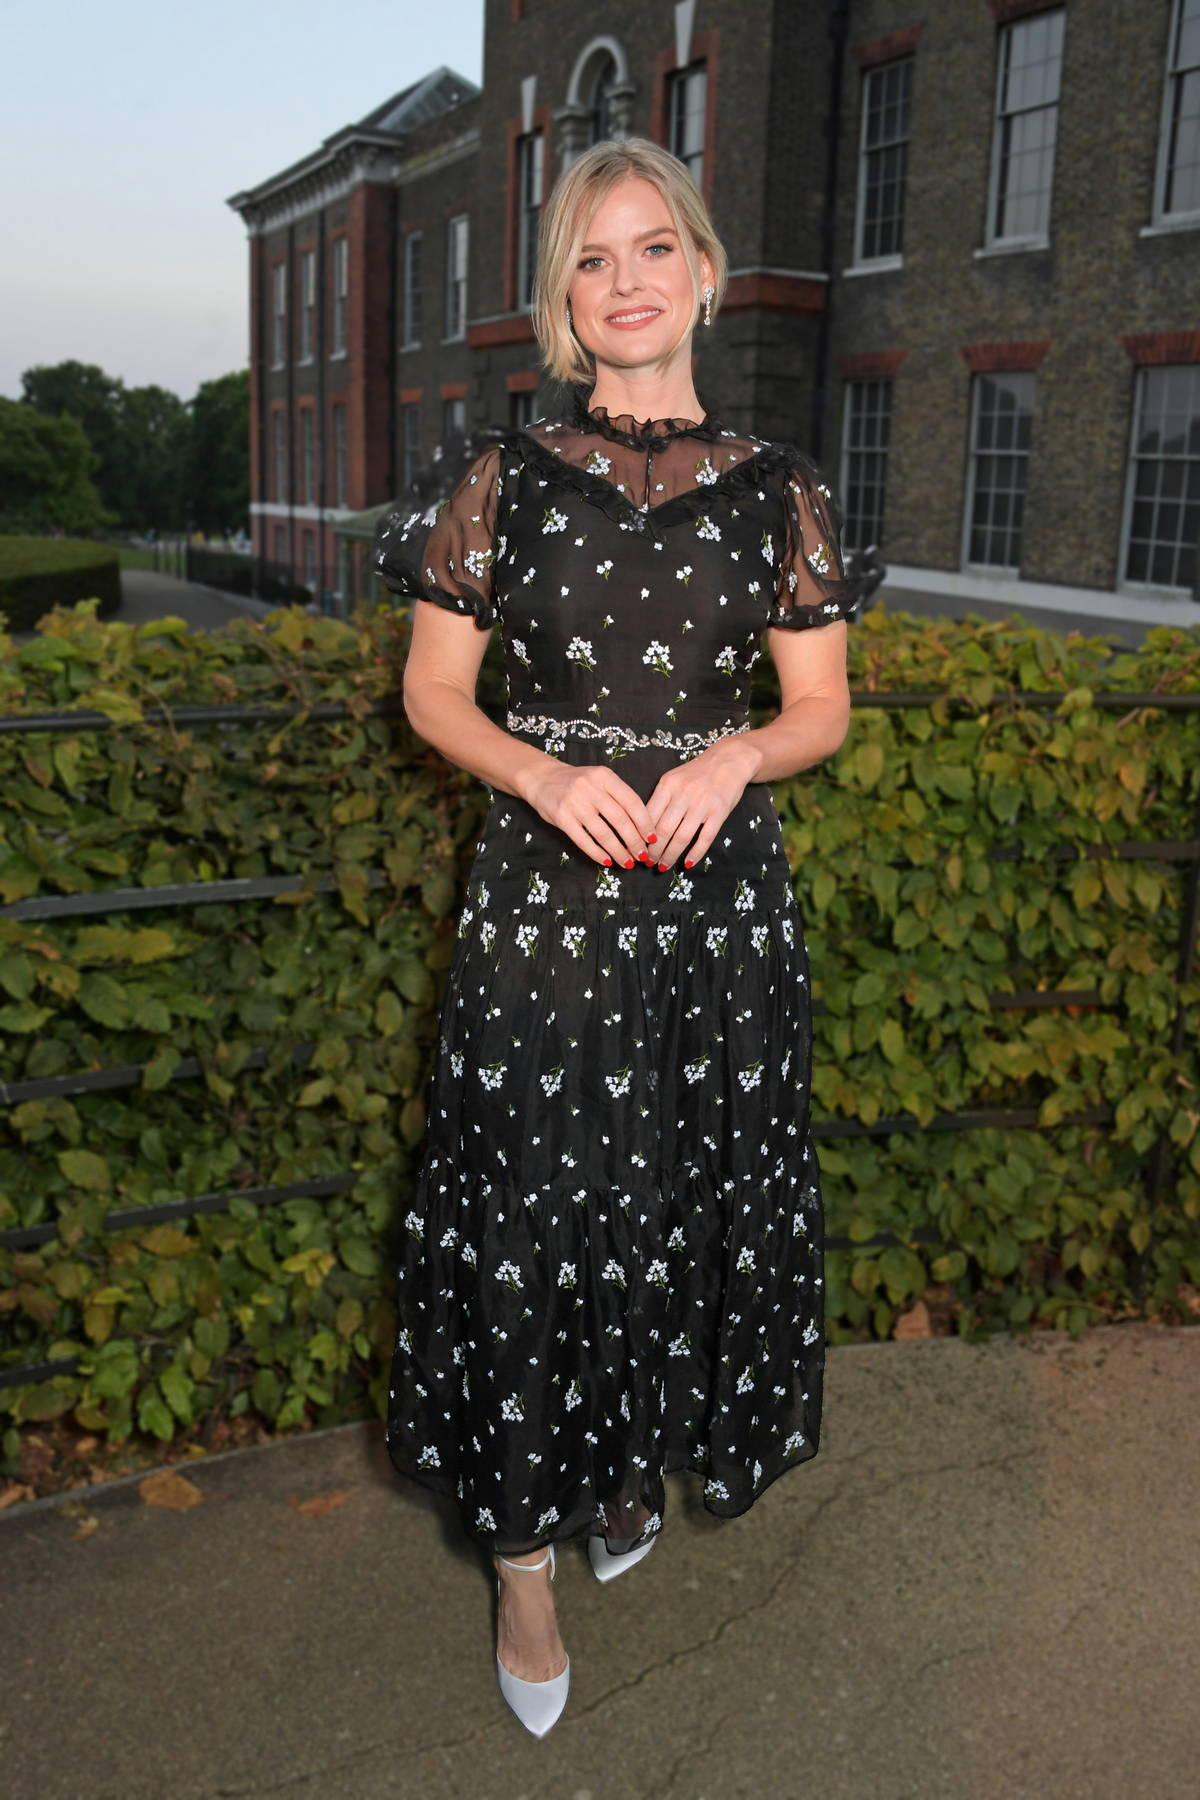 Alice Eve attends the ATG Summer Party at Kensington Palace in London, UK